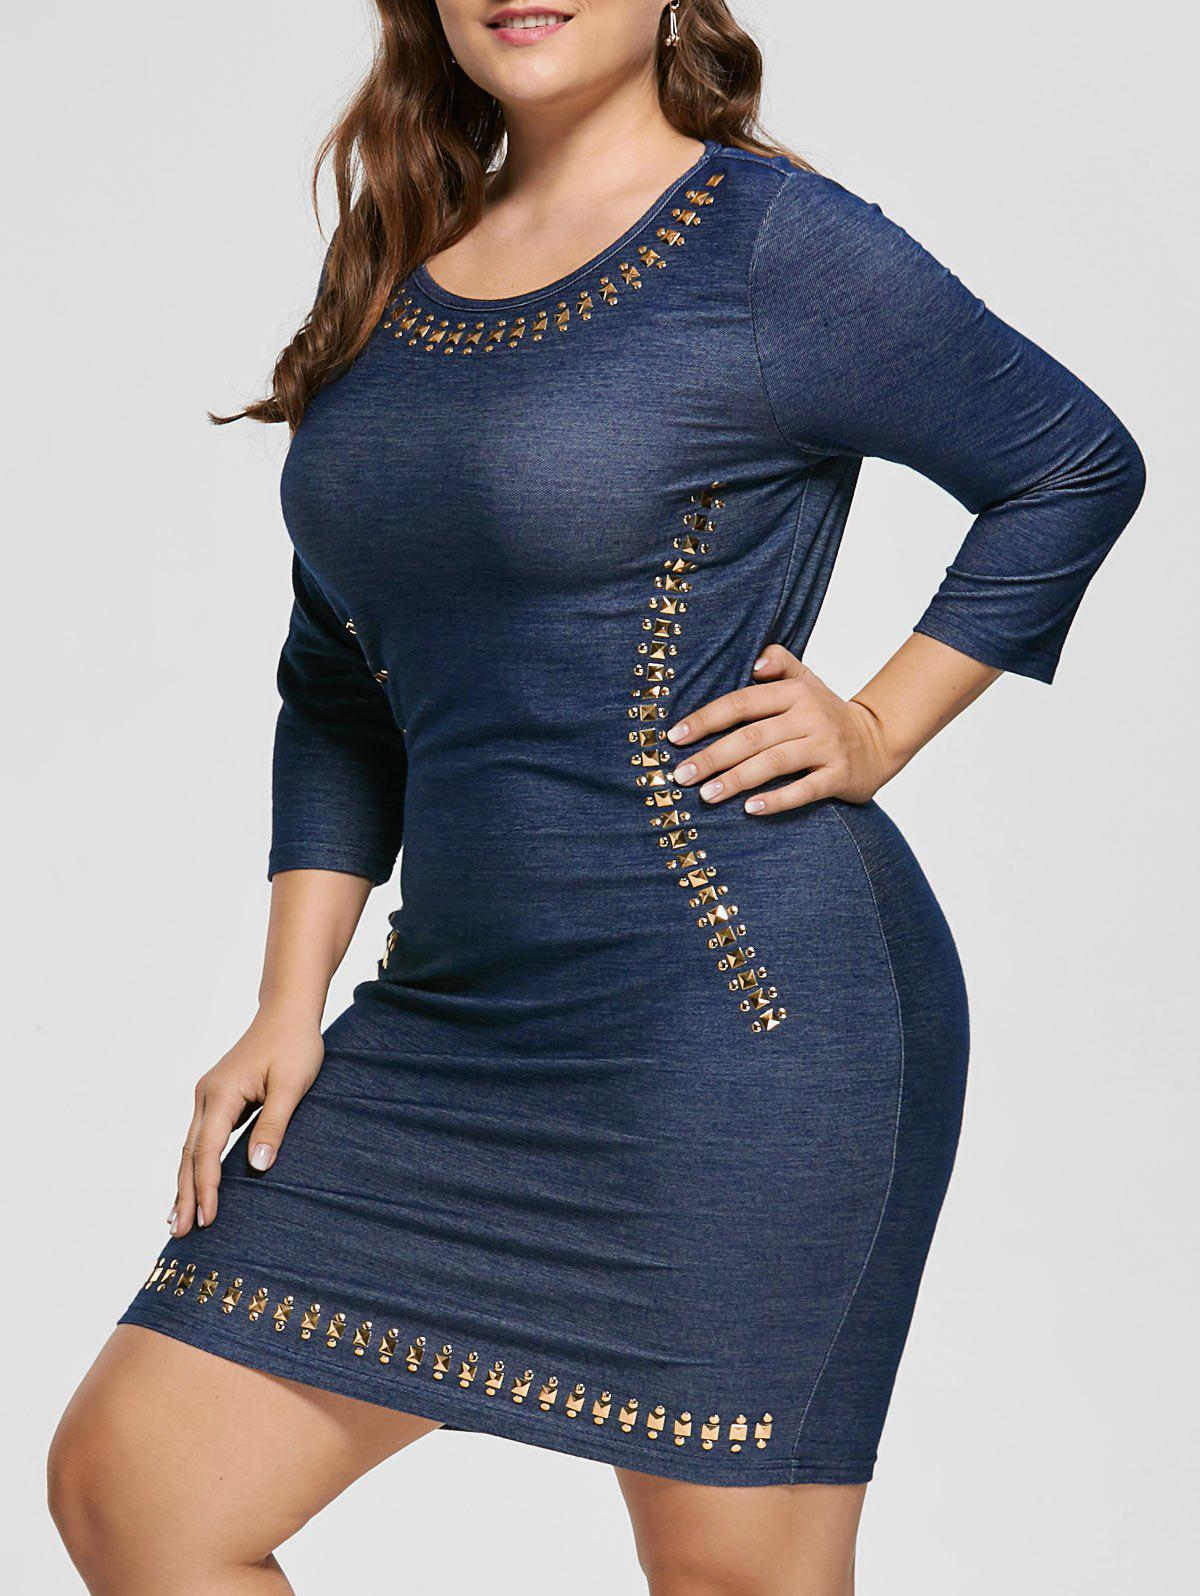 Jean Long Sleeve Plus Size Embellished Sheath Fitted DressWOMEN<br><br>Size: 4XL; Color: DENIM BLUE; Style: Brief; Material: Polyester; Silhouette: Sheath; Dresses Length: Knee-Length; Neckline: Round Collar; Sleeve Length: 3/4 Length Sleeves; Embellishment: Rivet; Pattern Type: Solid; With Belt: No; Season: Fall,Spring; Weight: 0.3000kg; Package Contents: 1 x Dress;